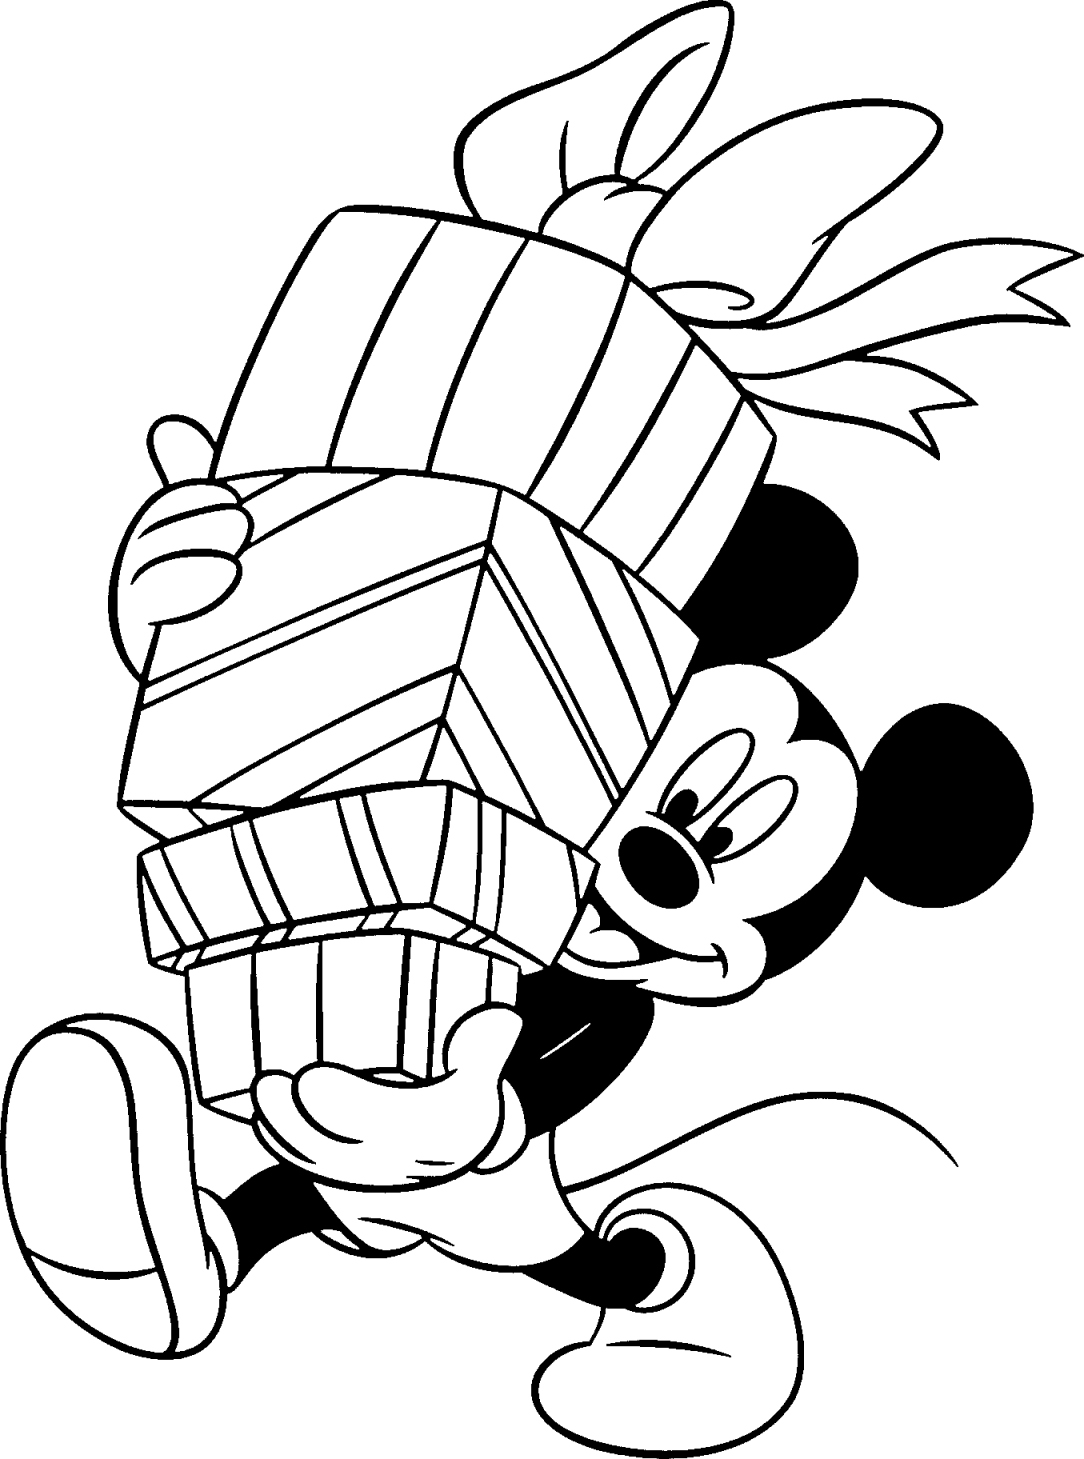 Disney Coloring Pages Mickey Mouse Disney Coloring Pages